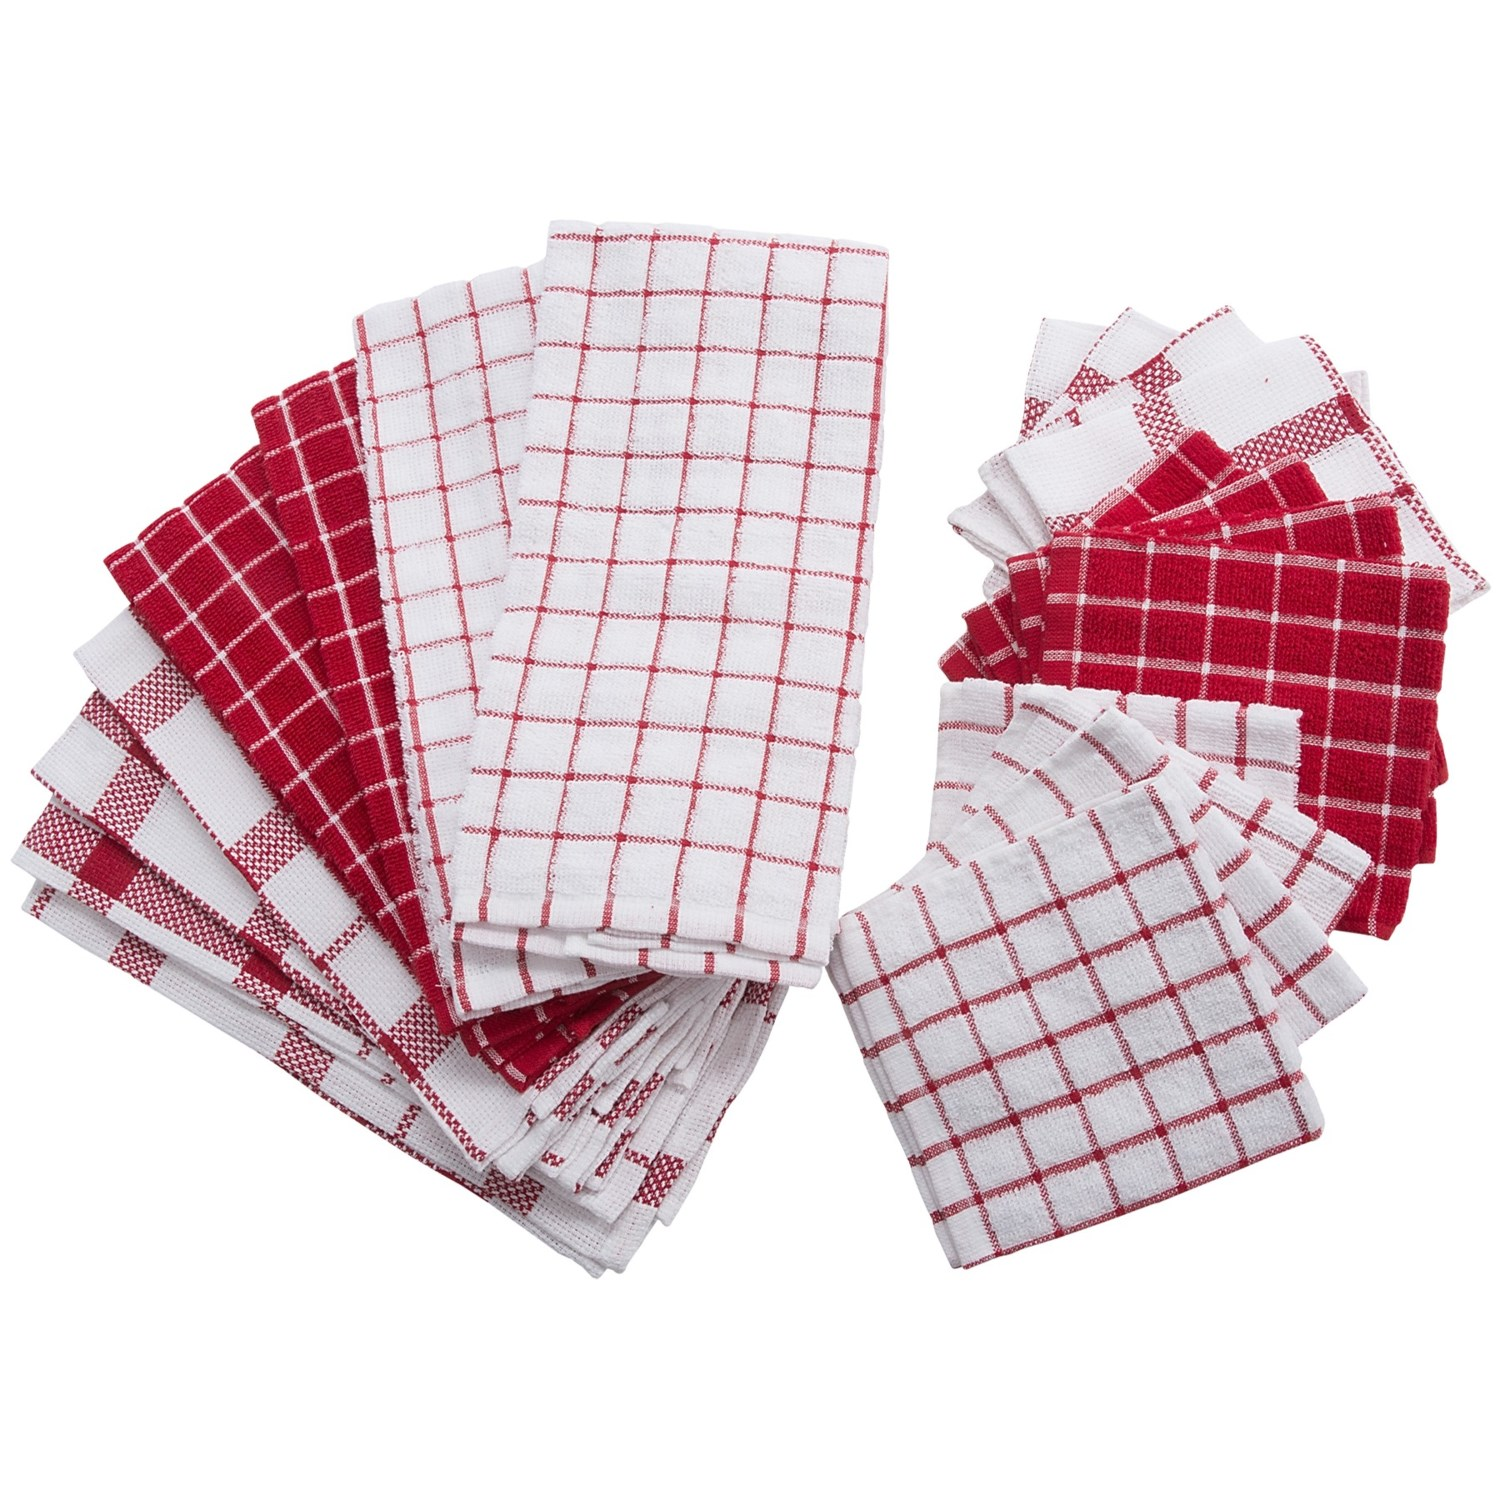 dii kitchen towel and dishcloth set 20 save 42